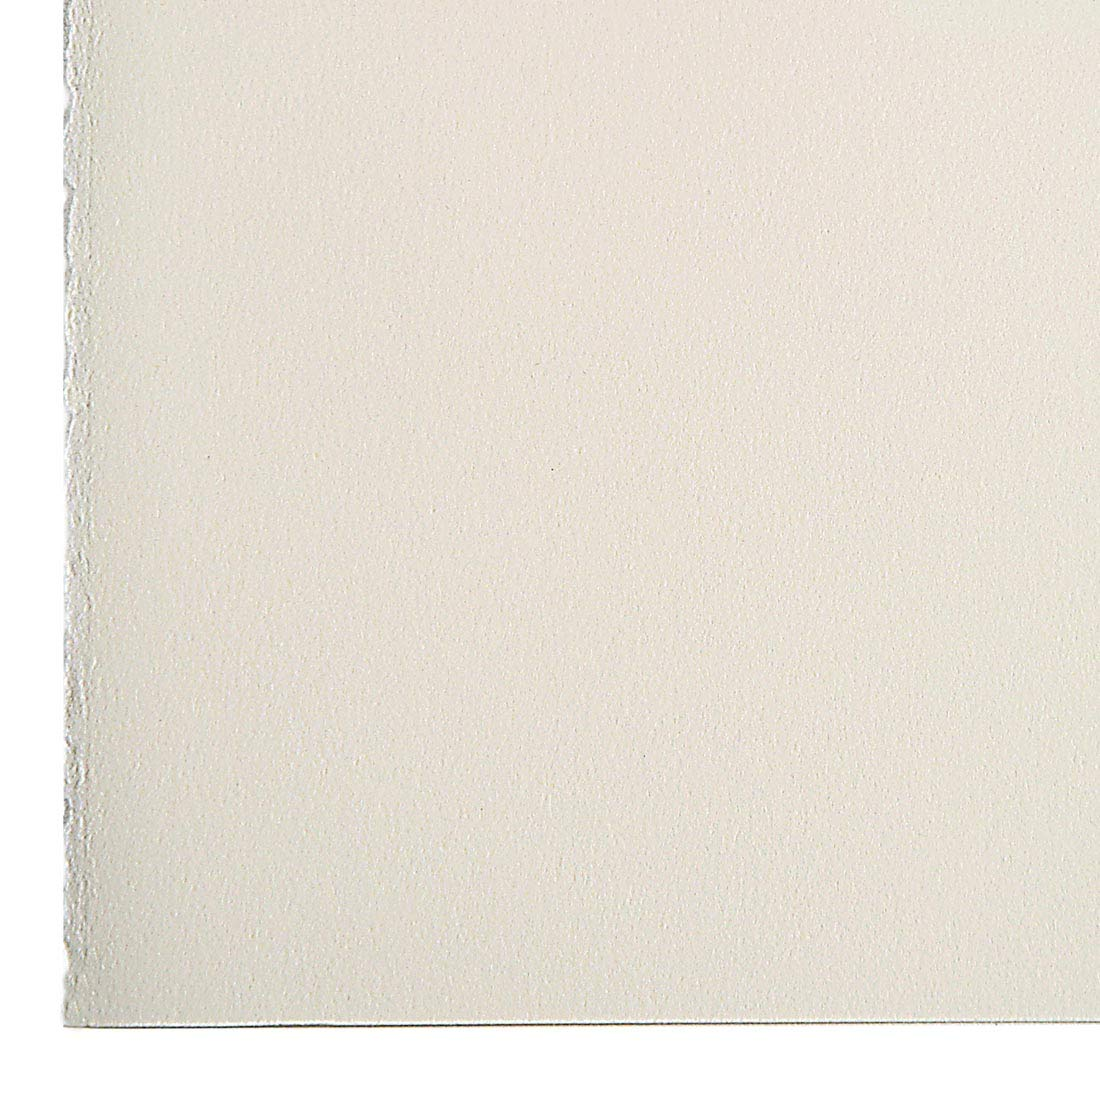 Pack of 10 Lightweight Vellum Sheets 115 g 48 x 66 cm Arches BFK Rives Cream White